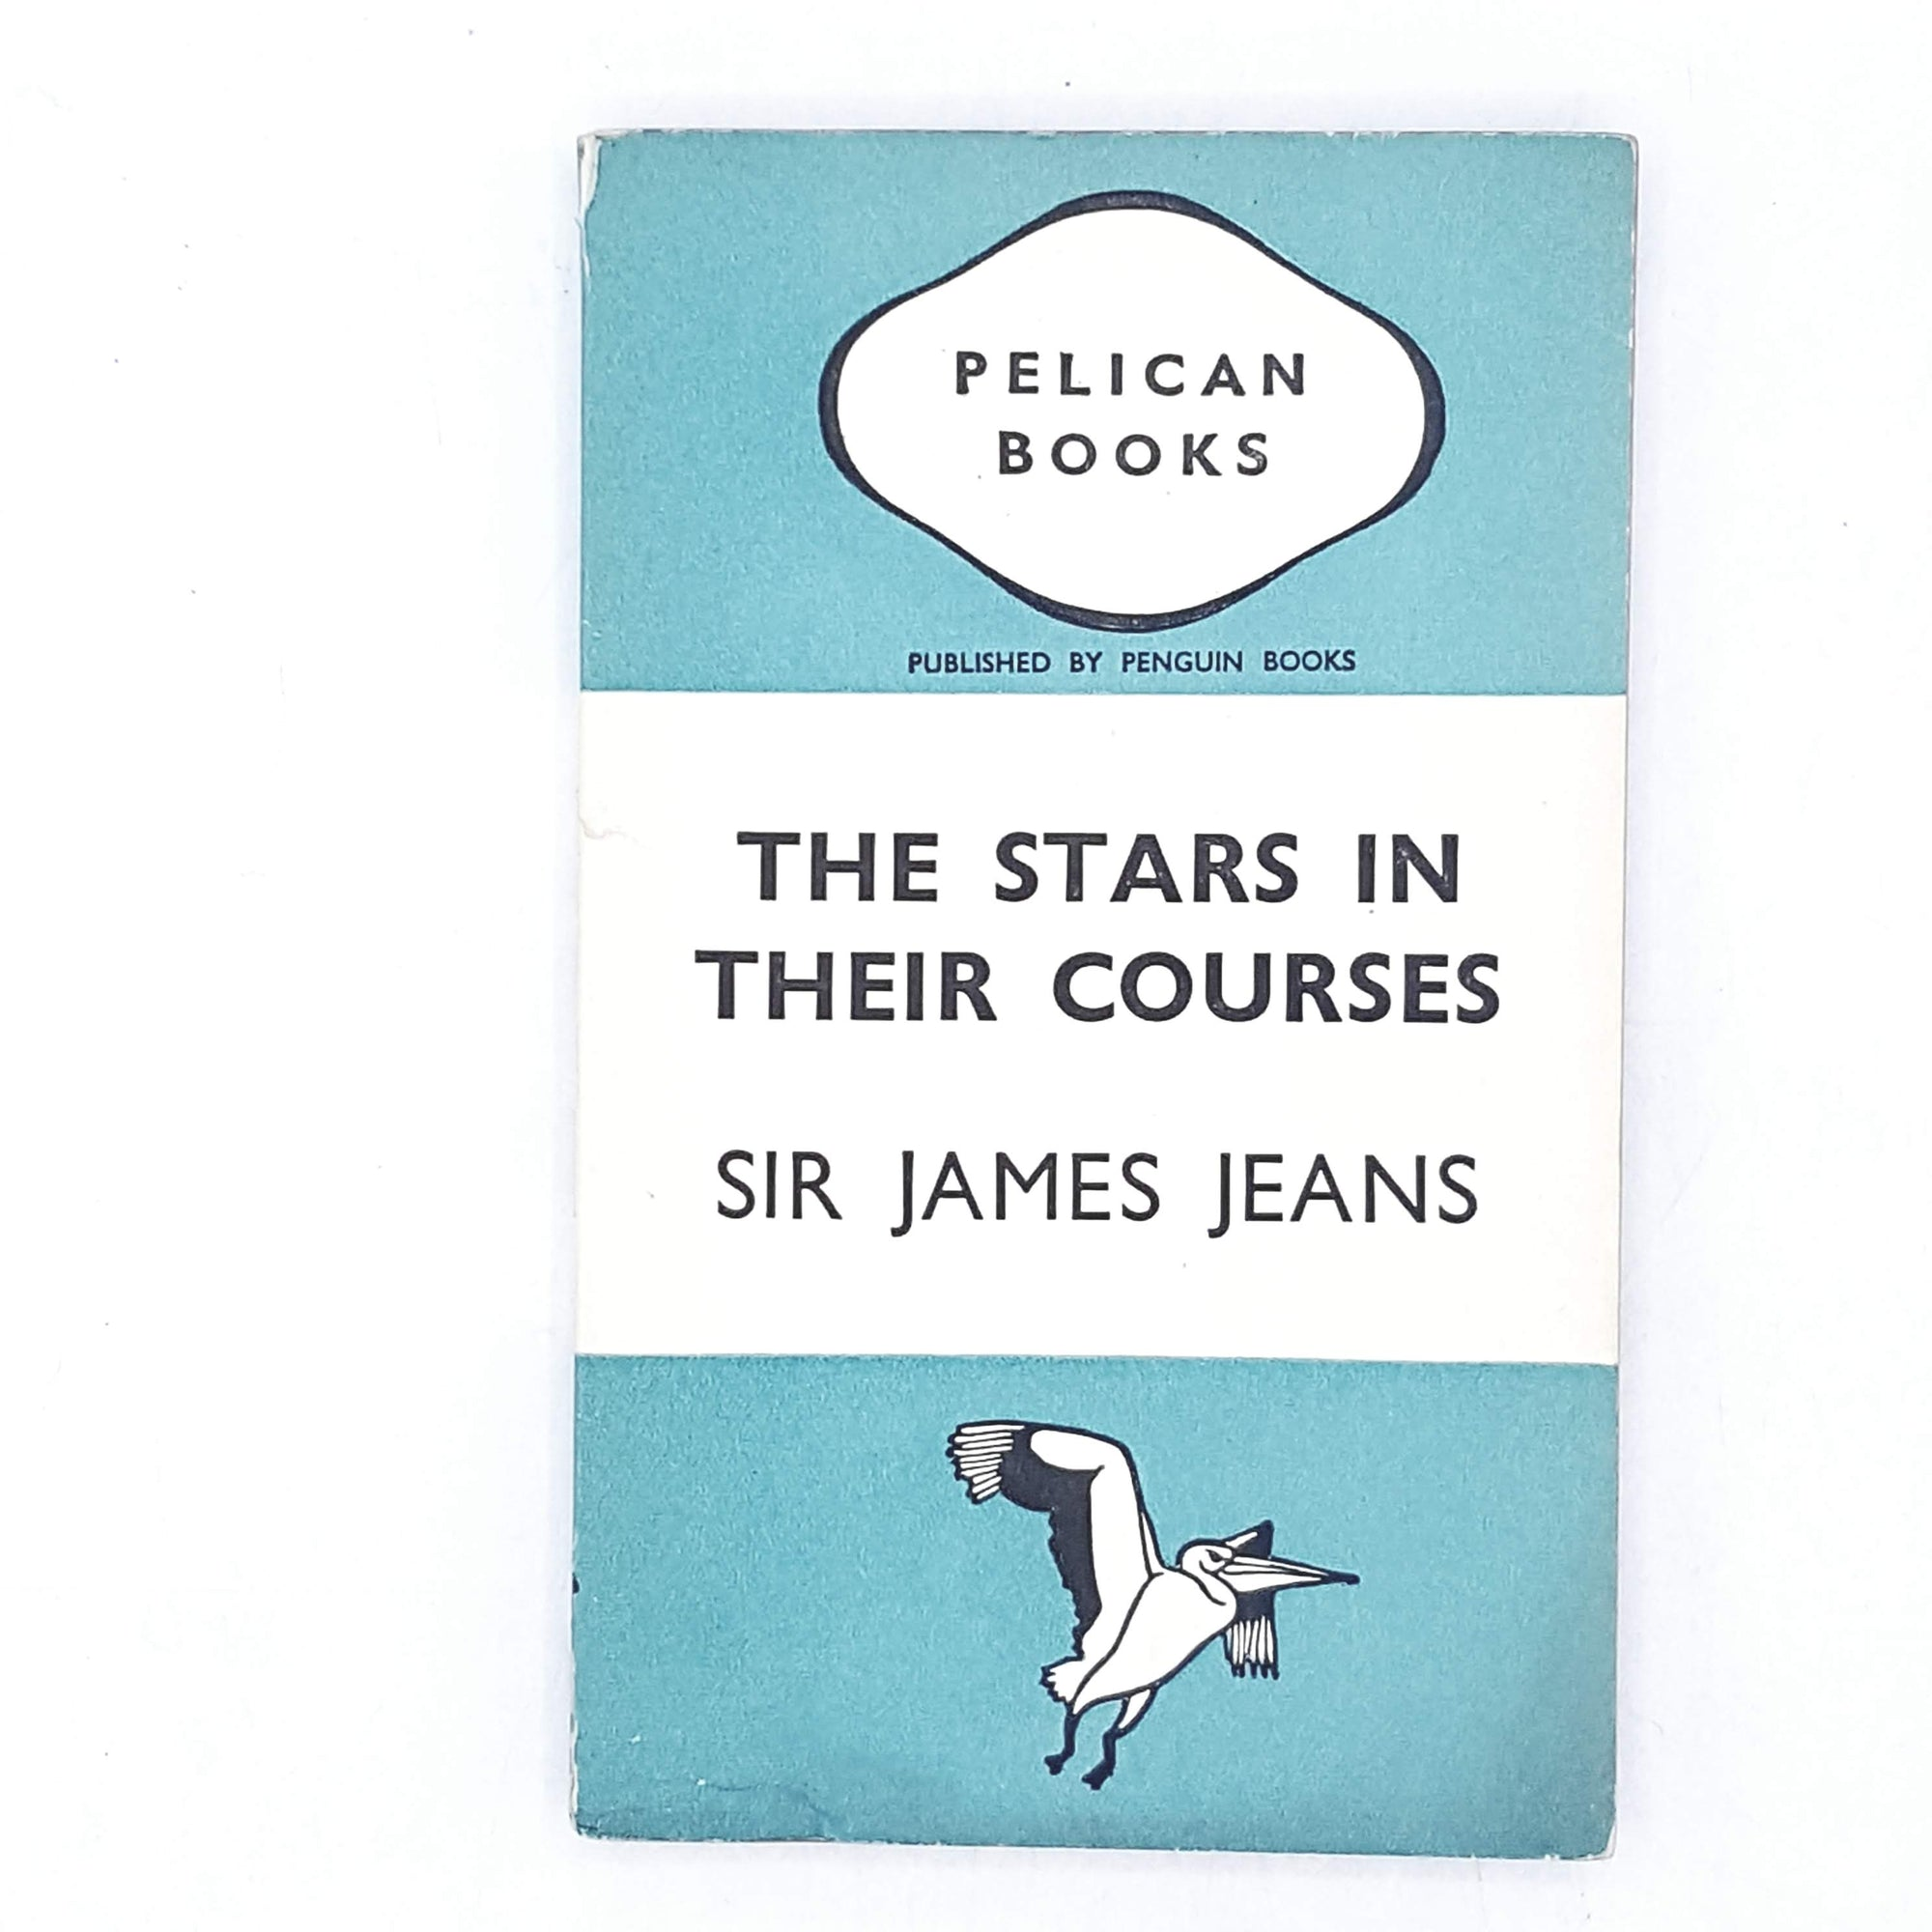 The Stars in Their Courses by Sir James Jeans 1939